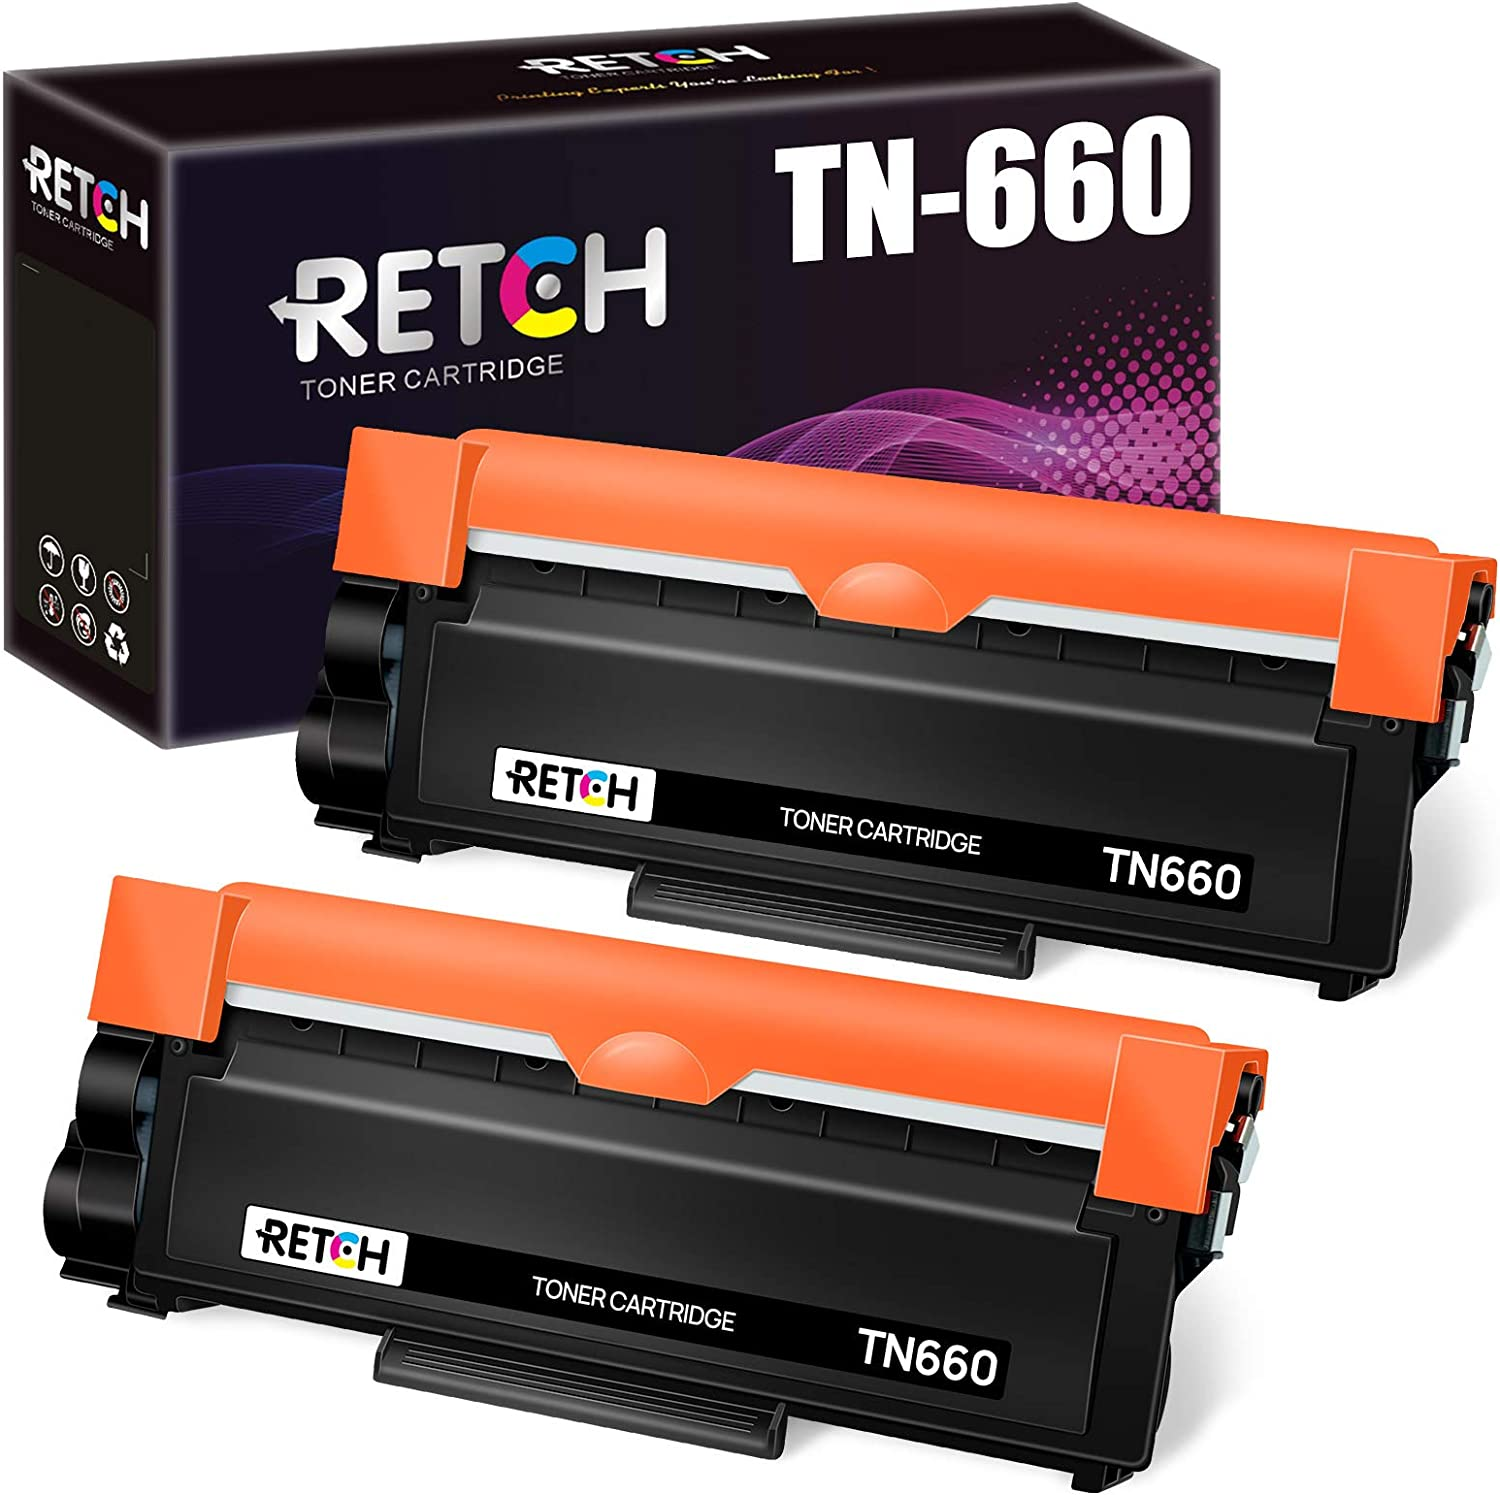 RETCH Compatible Toner Cartridges Replacement for Brother TN660 TN-660 TN630 to use for Brother HL-L2300D HL-L2320D HL-2340DW HL-L2380DW MFC-L2720DW MFC-L2740DW DCP-L2540DW DCP-L2520DW(2 Black)